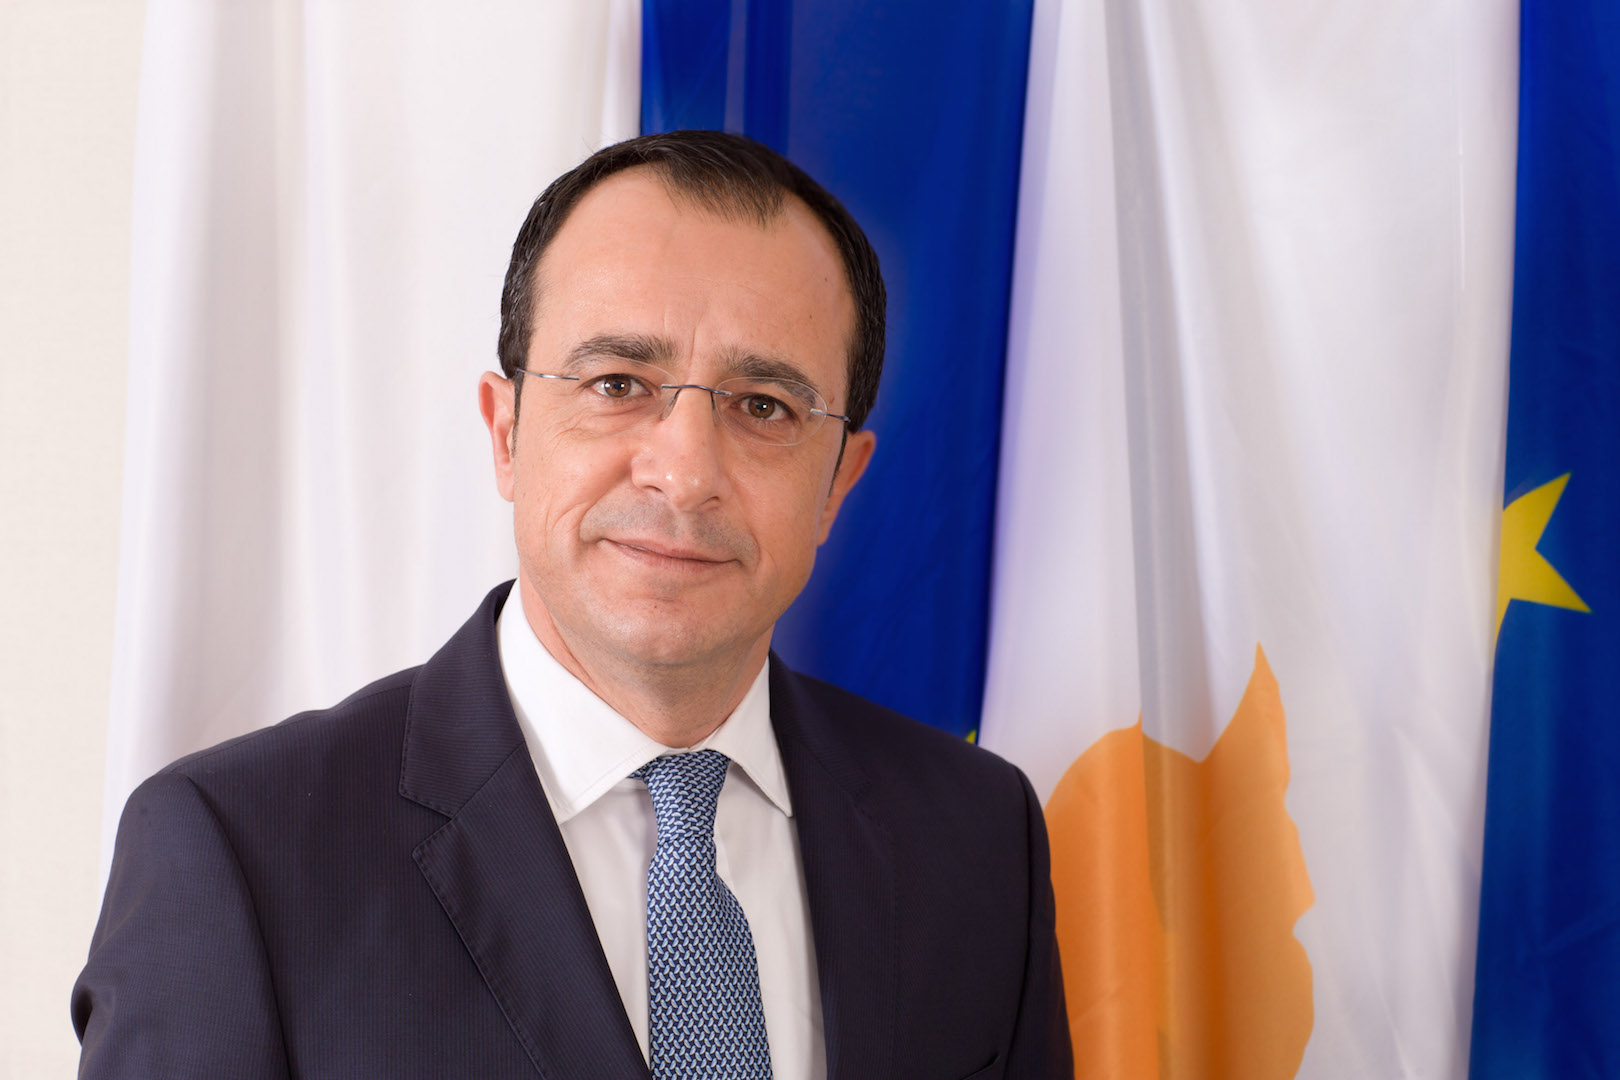 Nicos Christodoulides in Brussels for the EU FAC